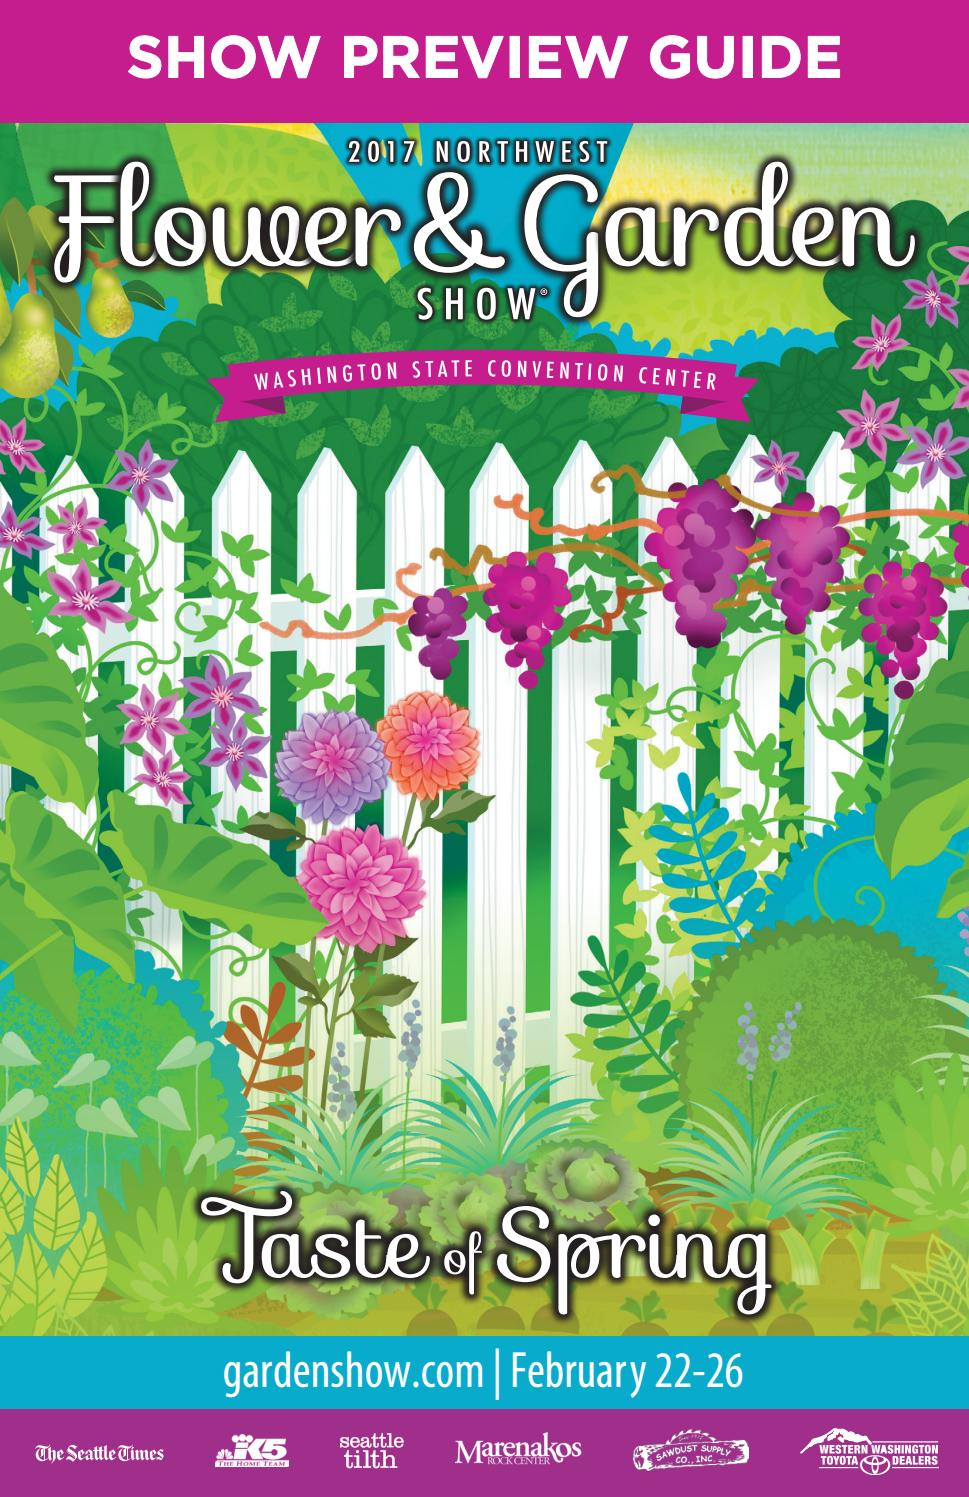 2017 northwest flower u0026 garden show preview guide by o u0027loughlin